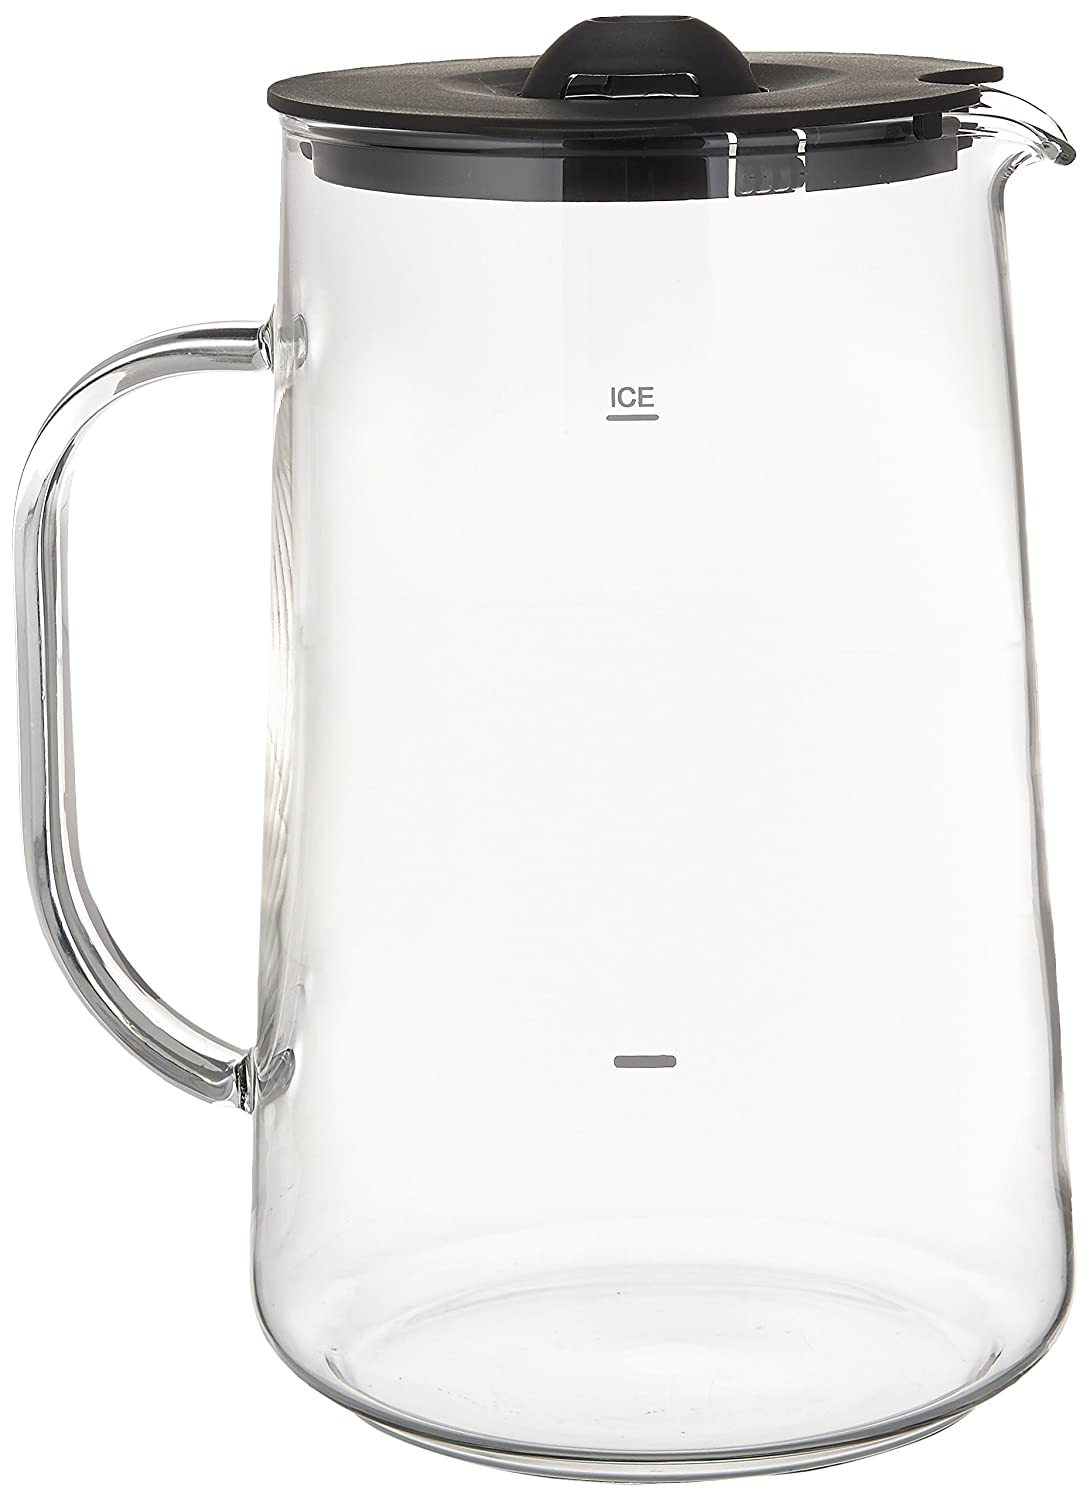 Capresso 6624 Ice Tea Glass Pitcher, 80 oz. (2.5 Qt.)